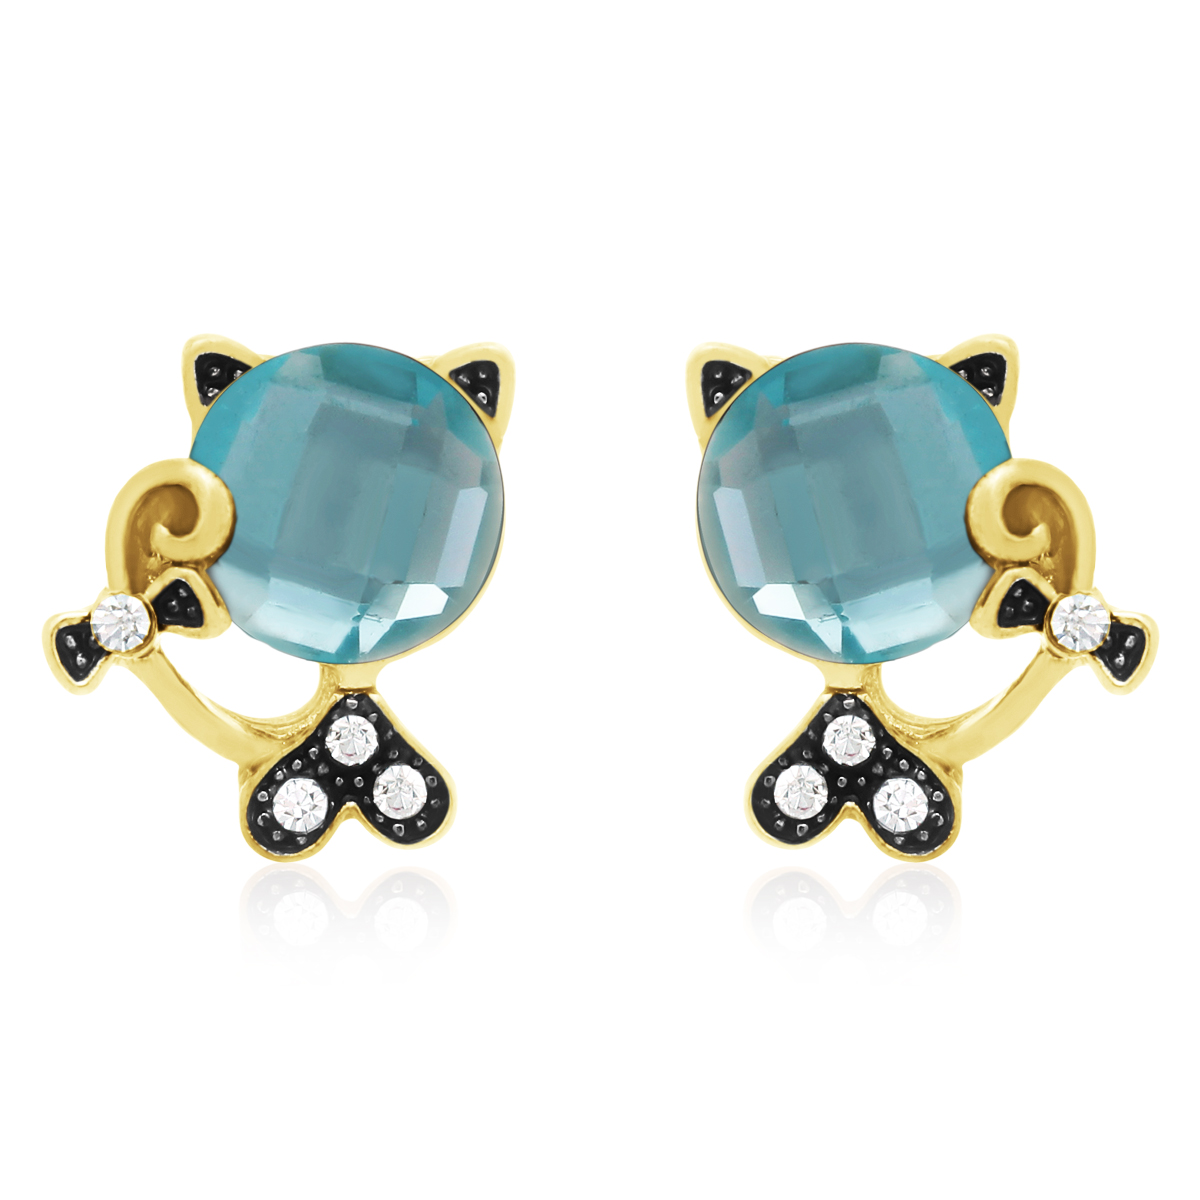 Swarovski Elements Aquamarine Sassy Cat Stud Earrings, Gold Overlay, Pushbacks